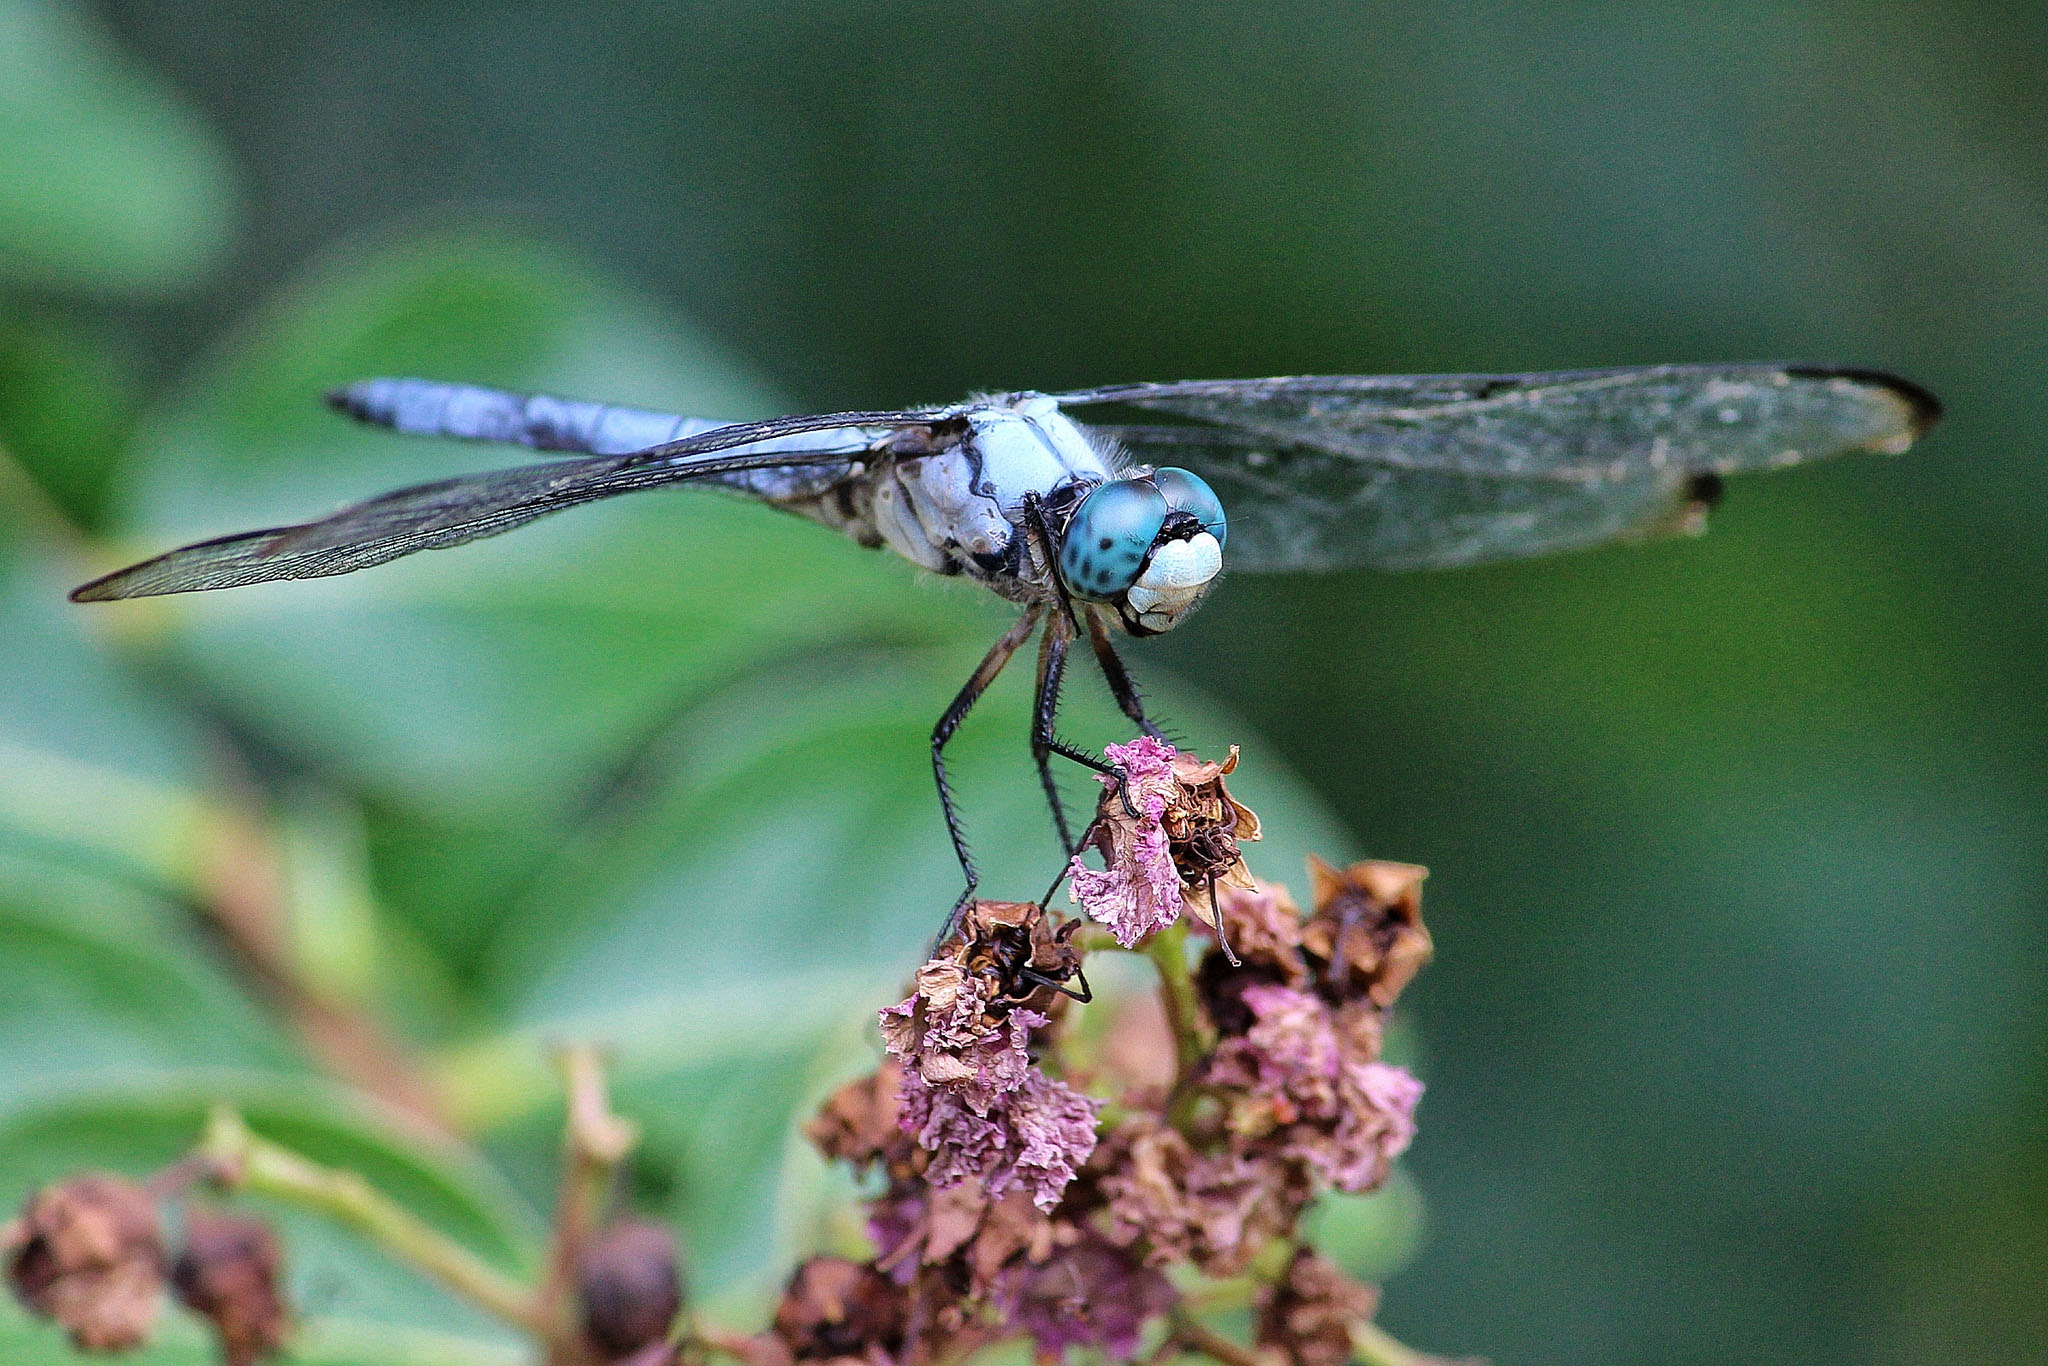 A dragonfly (Mary Moschell, Flickr).